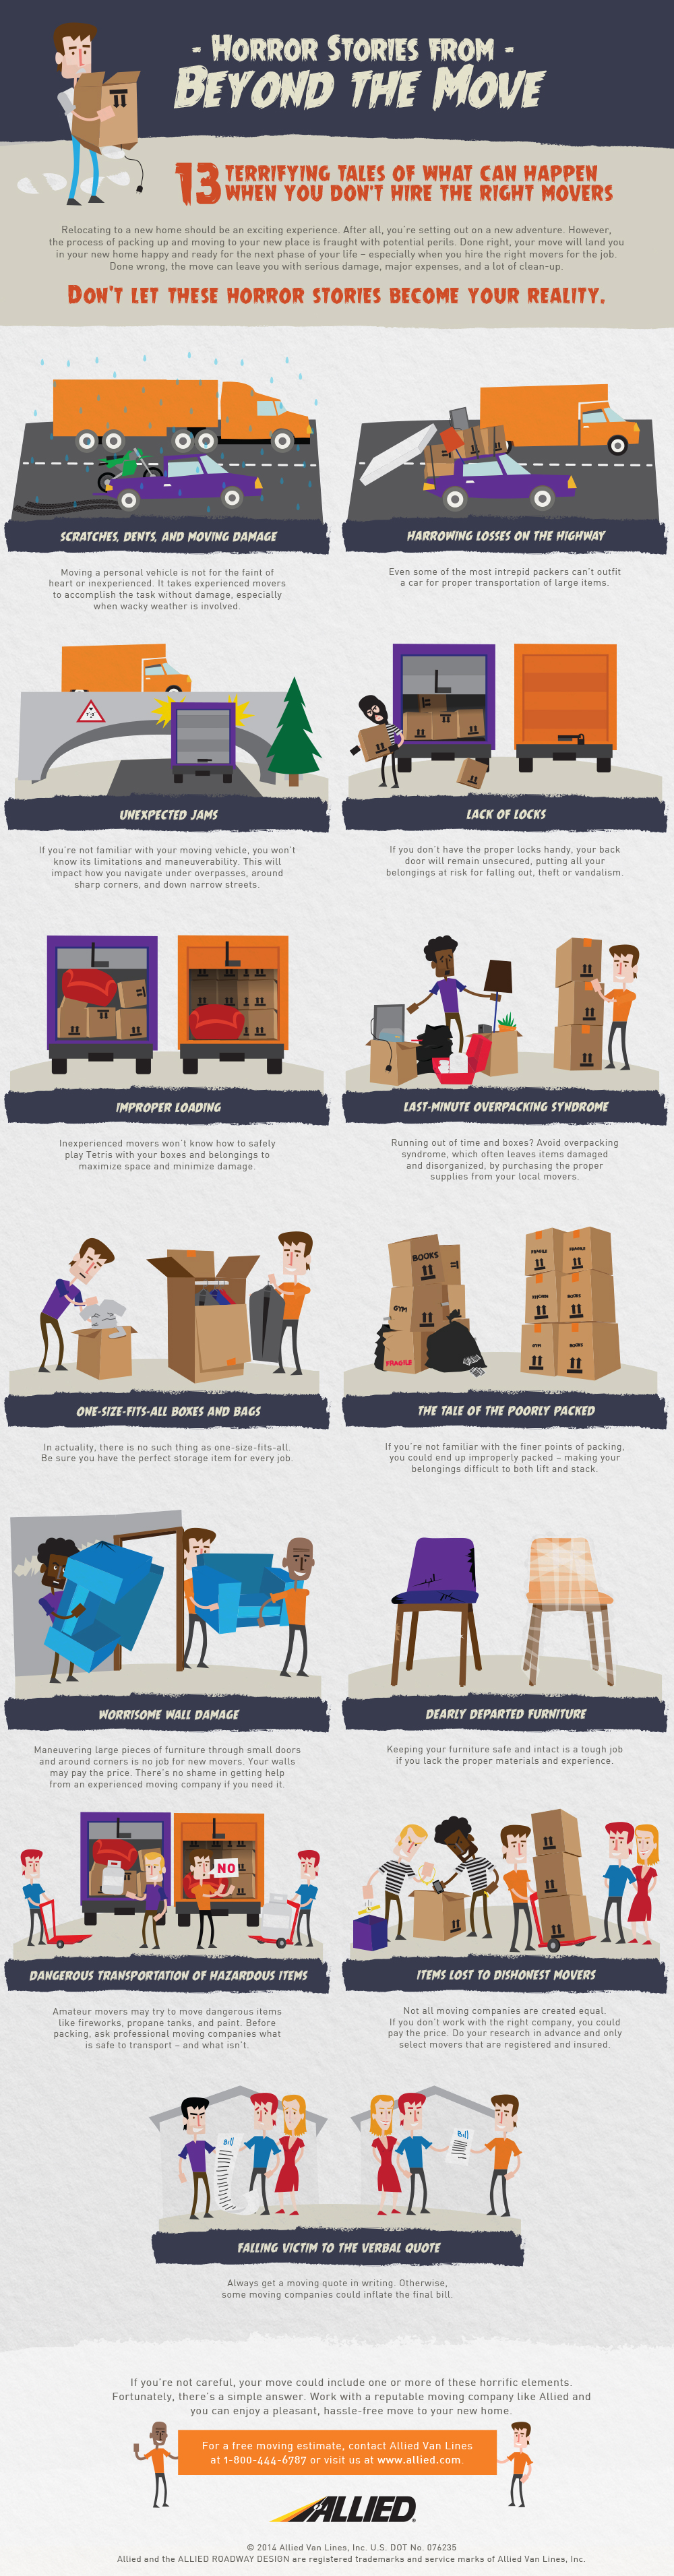 Hire the Right Movers